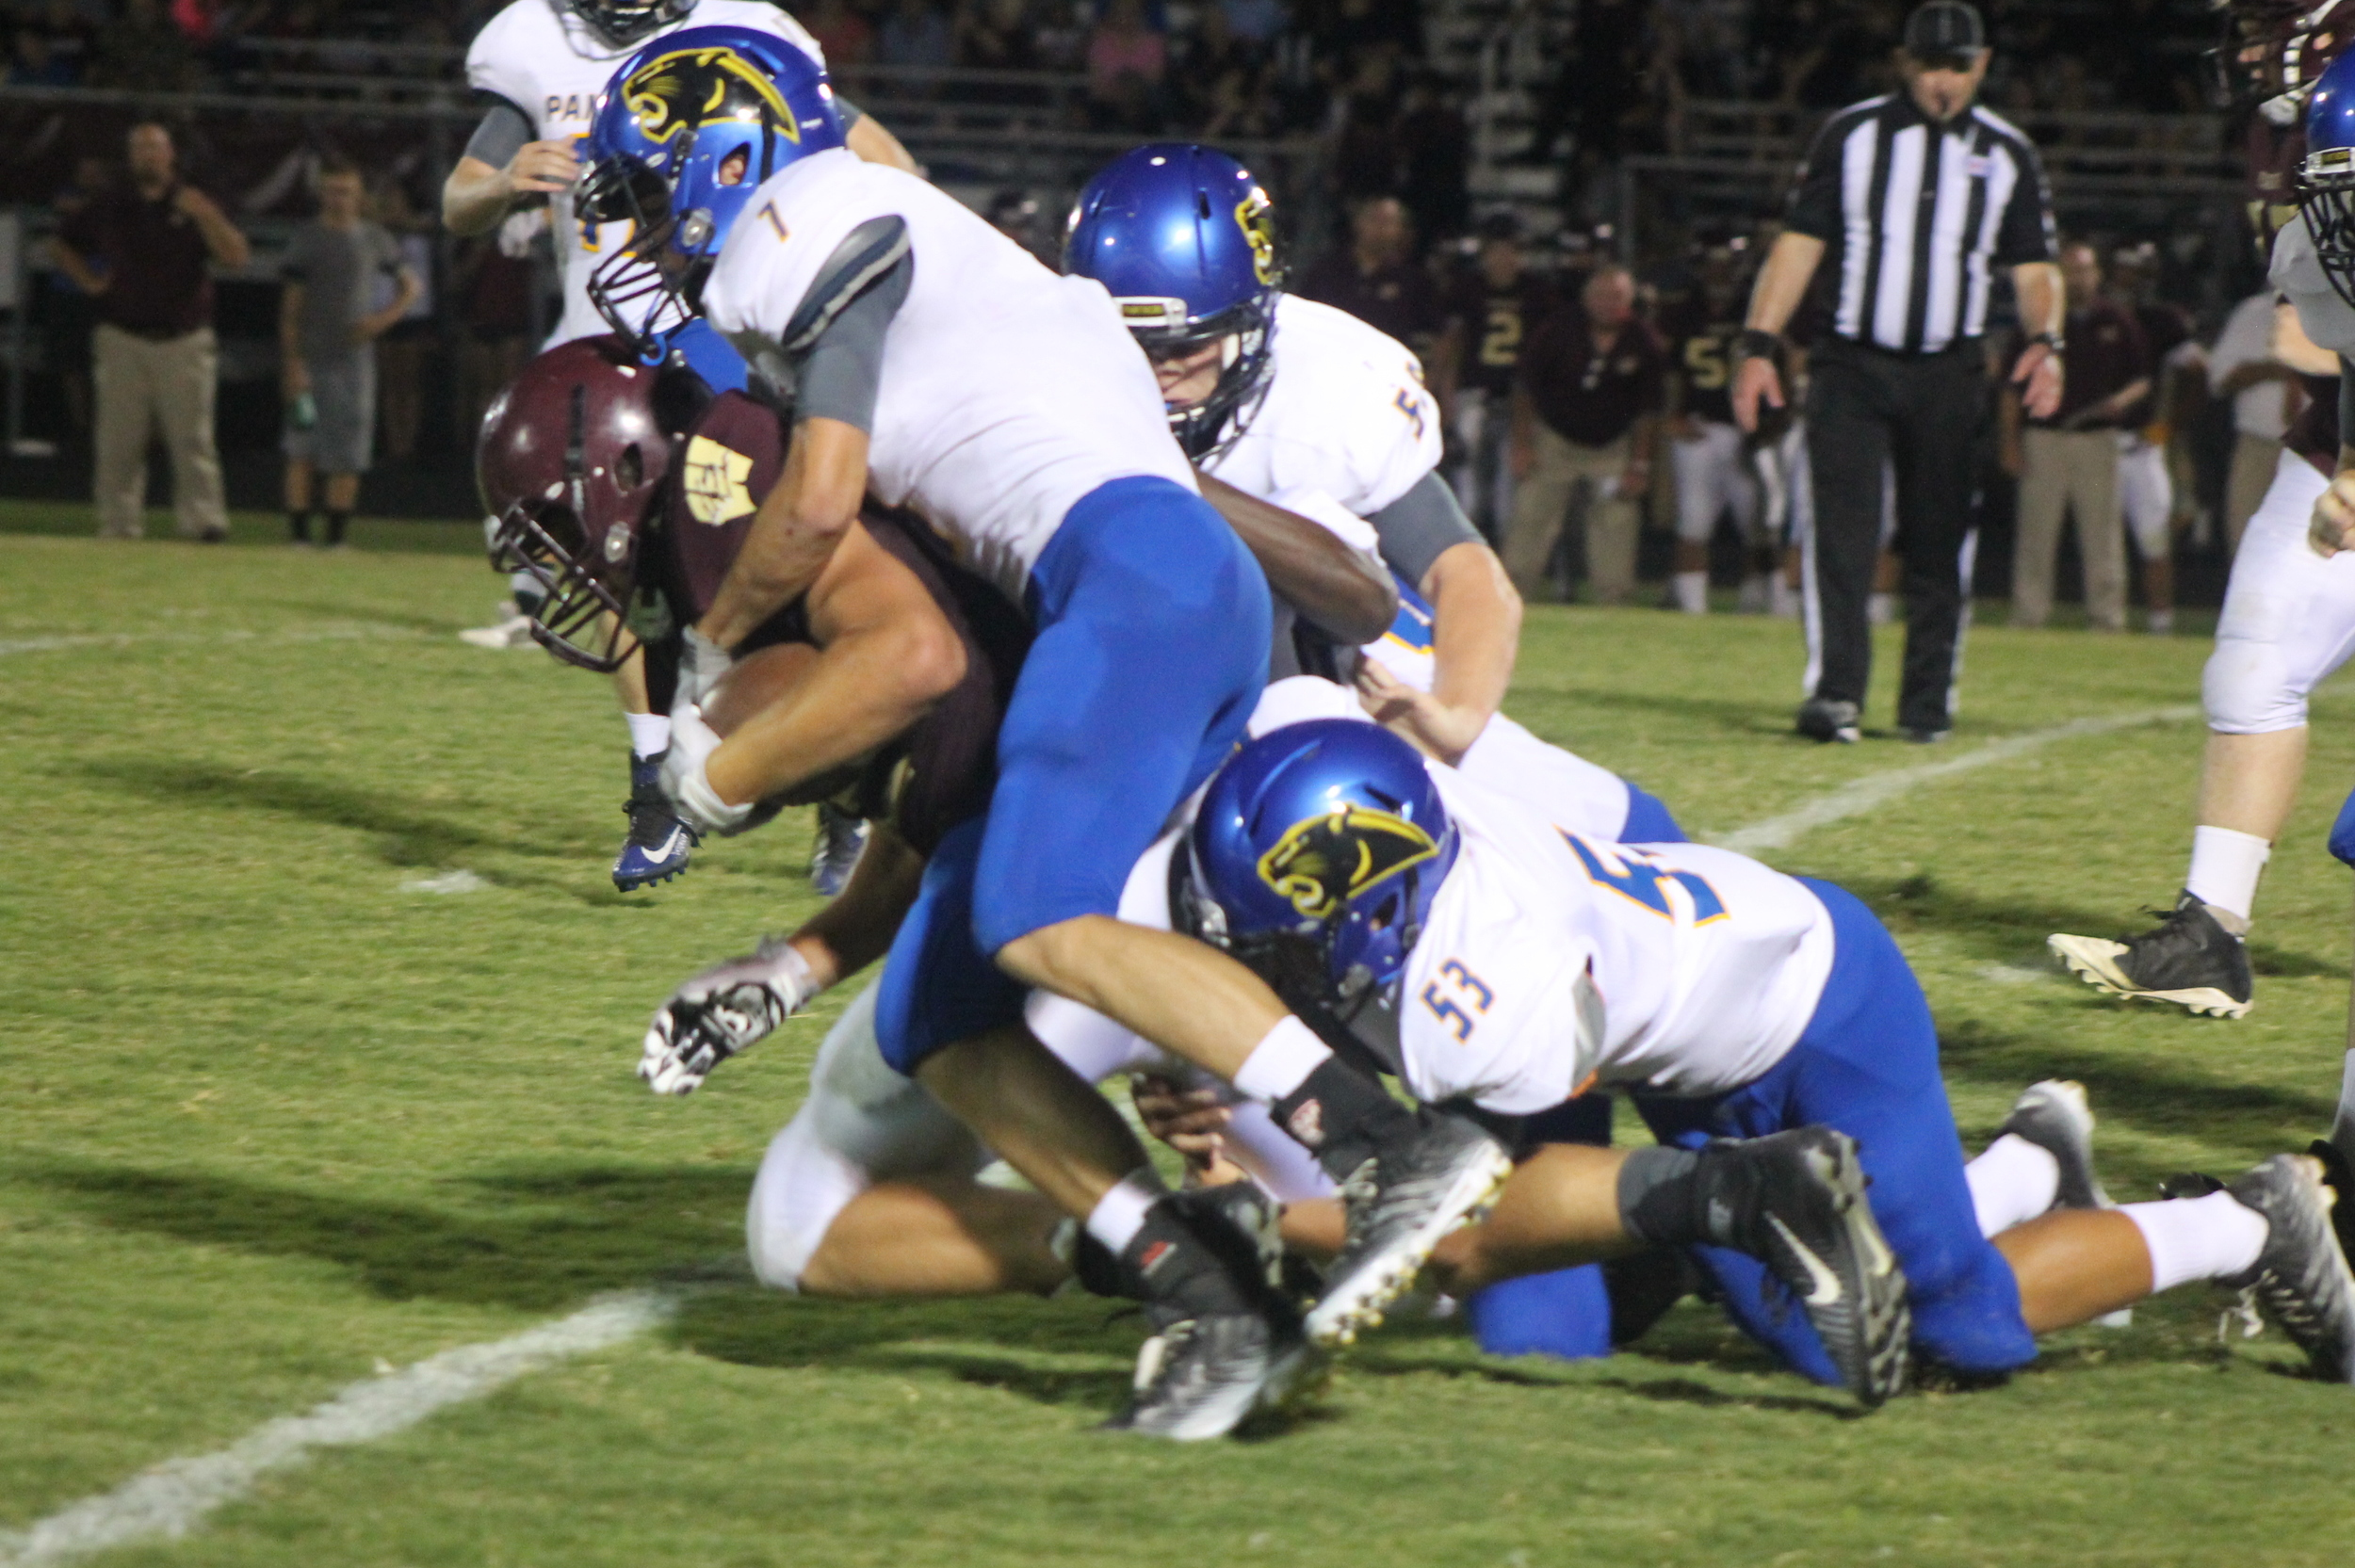 Trey Scudder (7) making a tackle. Scudder was rewarded for his efforts with a First Team All District honor.